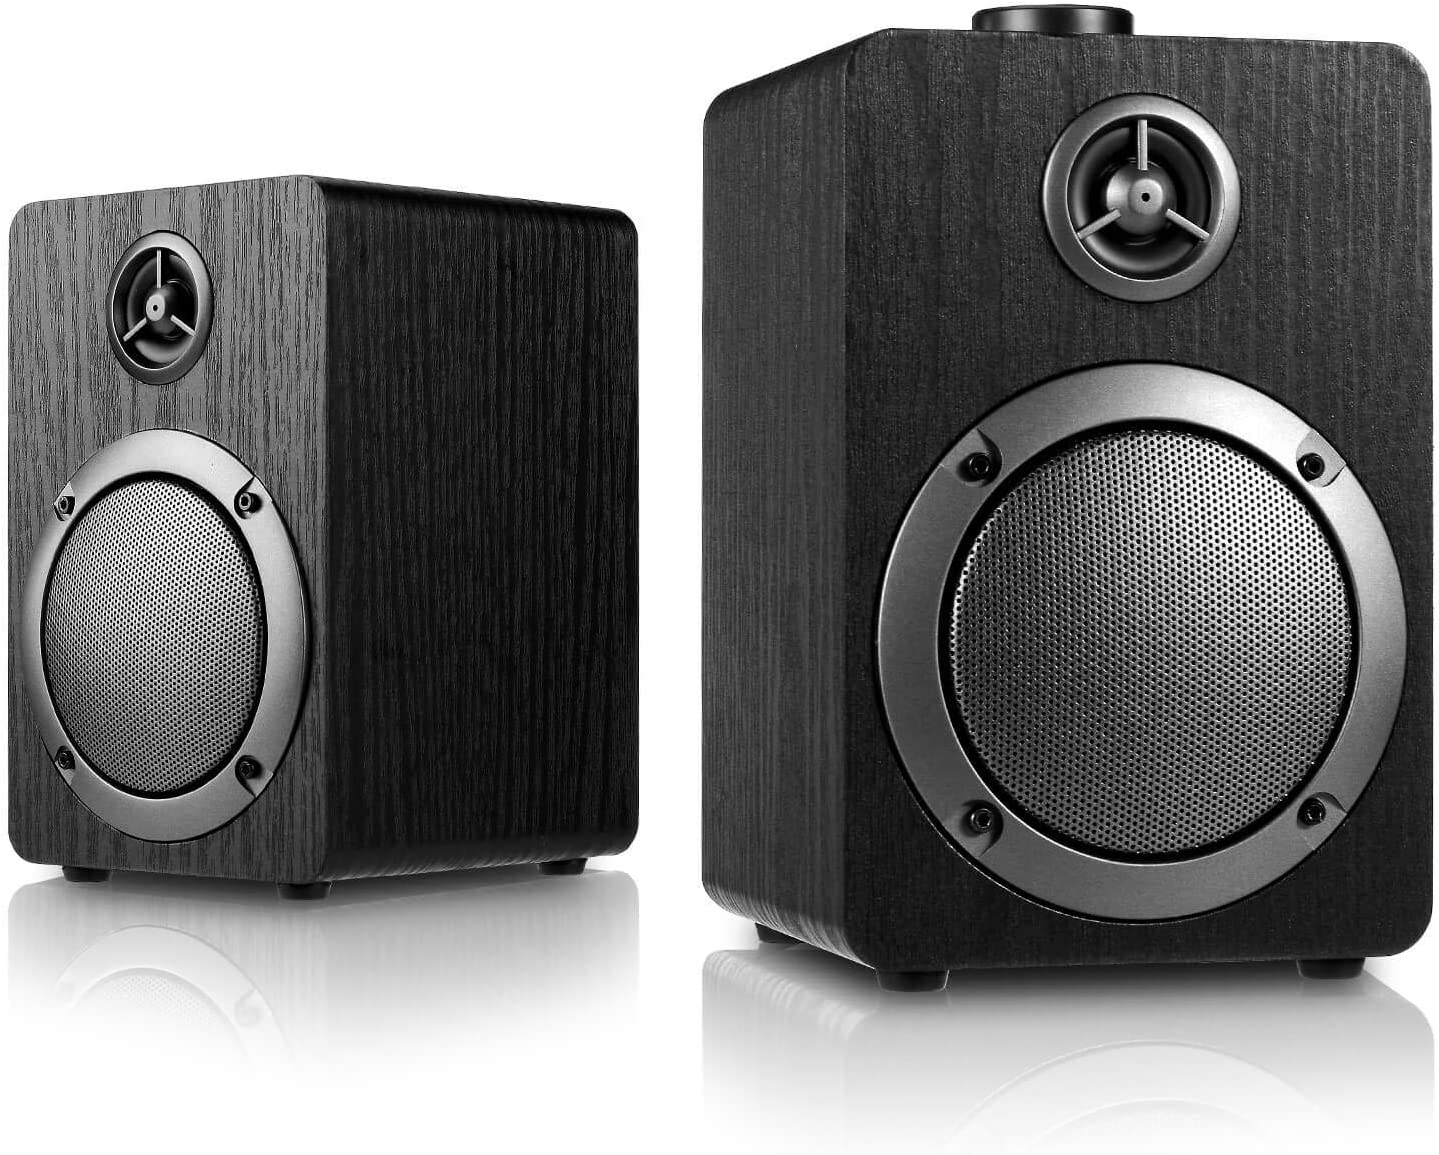 USB-Powered PC Computer Speakers; Mica PB20 with 2.0CH Surround Sound, Wooden Wired LED Volume Control Mini Speaker for Multiple Devices, Black